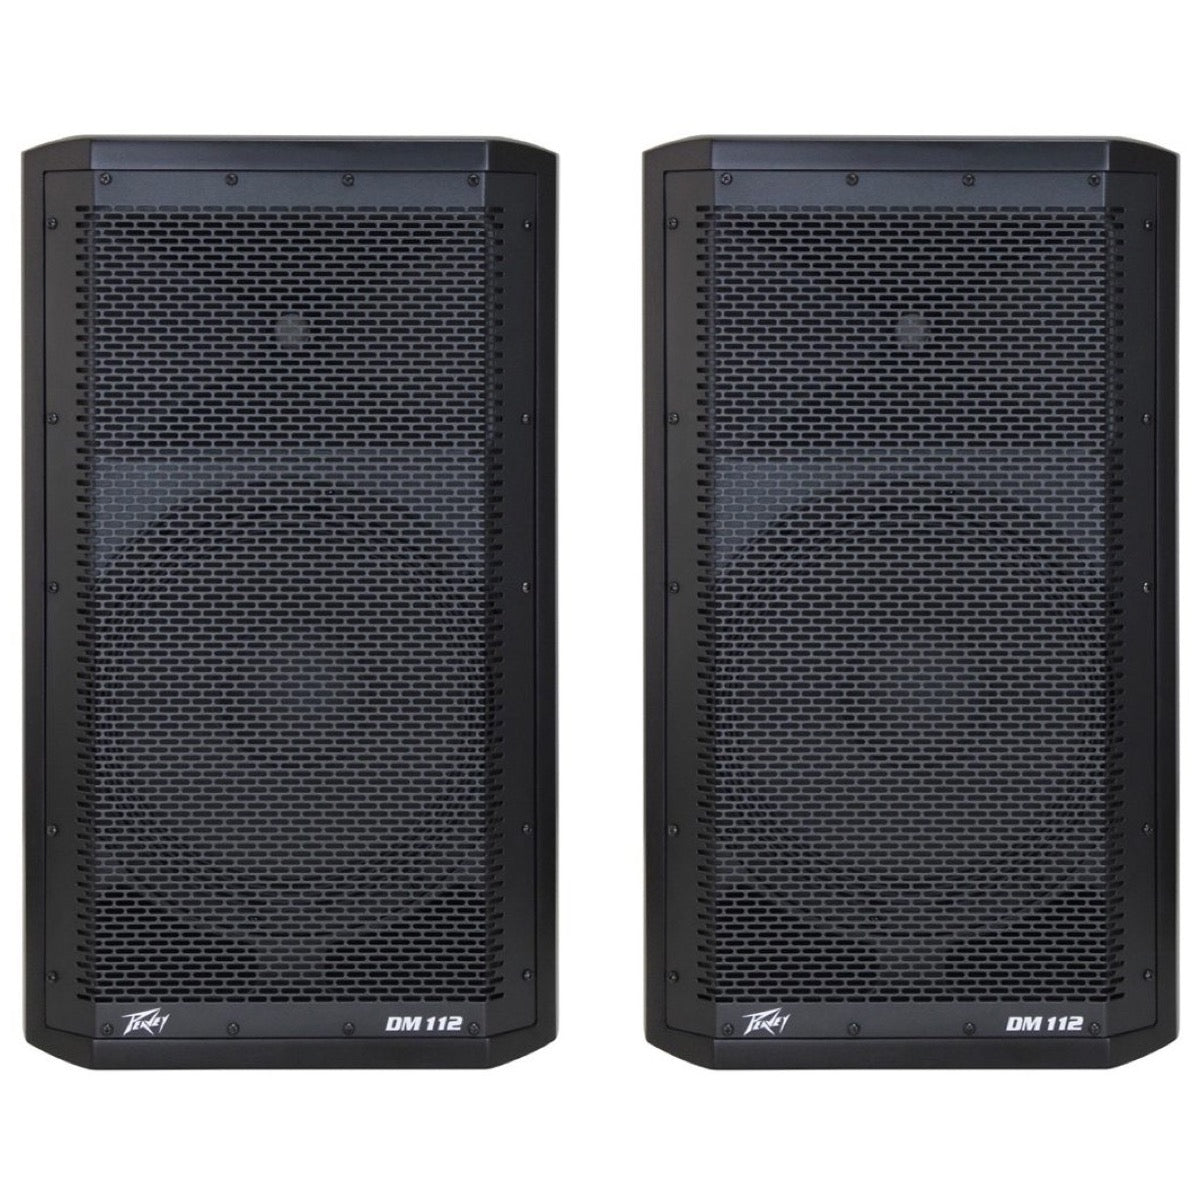 Peavey DM-112 Dark Matter Powered PA Speaker (500 Watts, 1x12 Inch), Pair